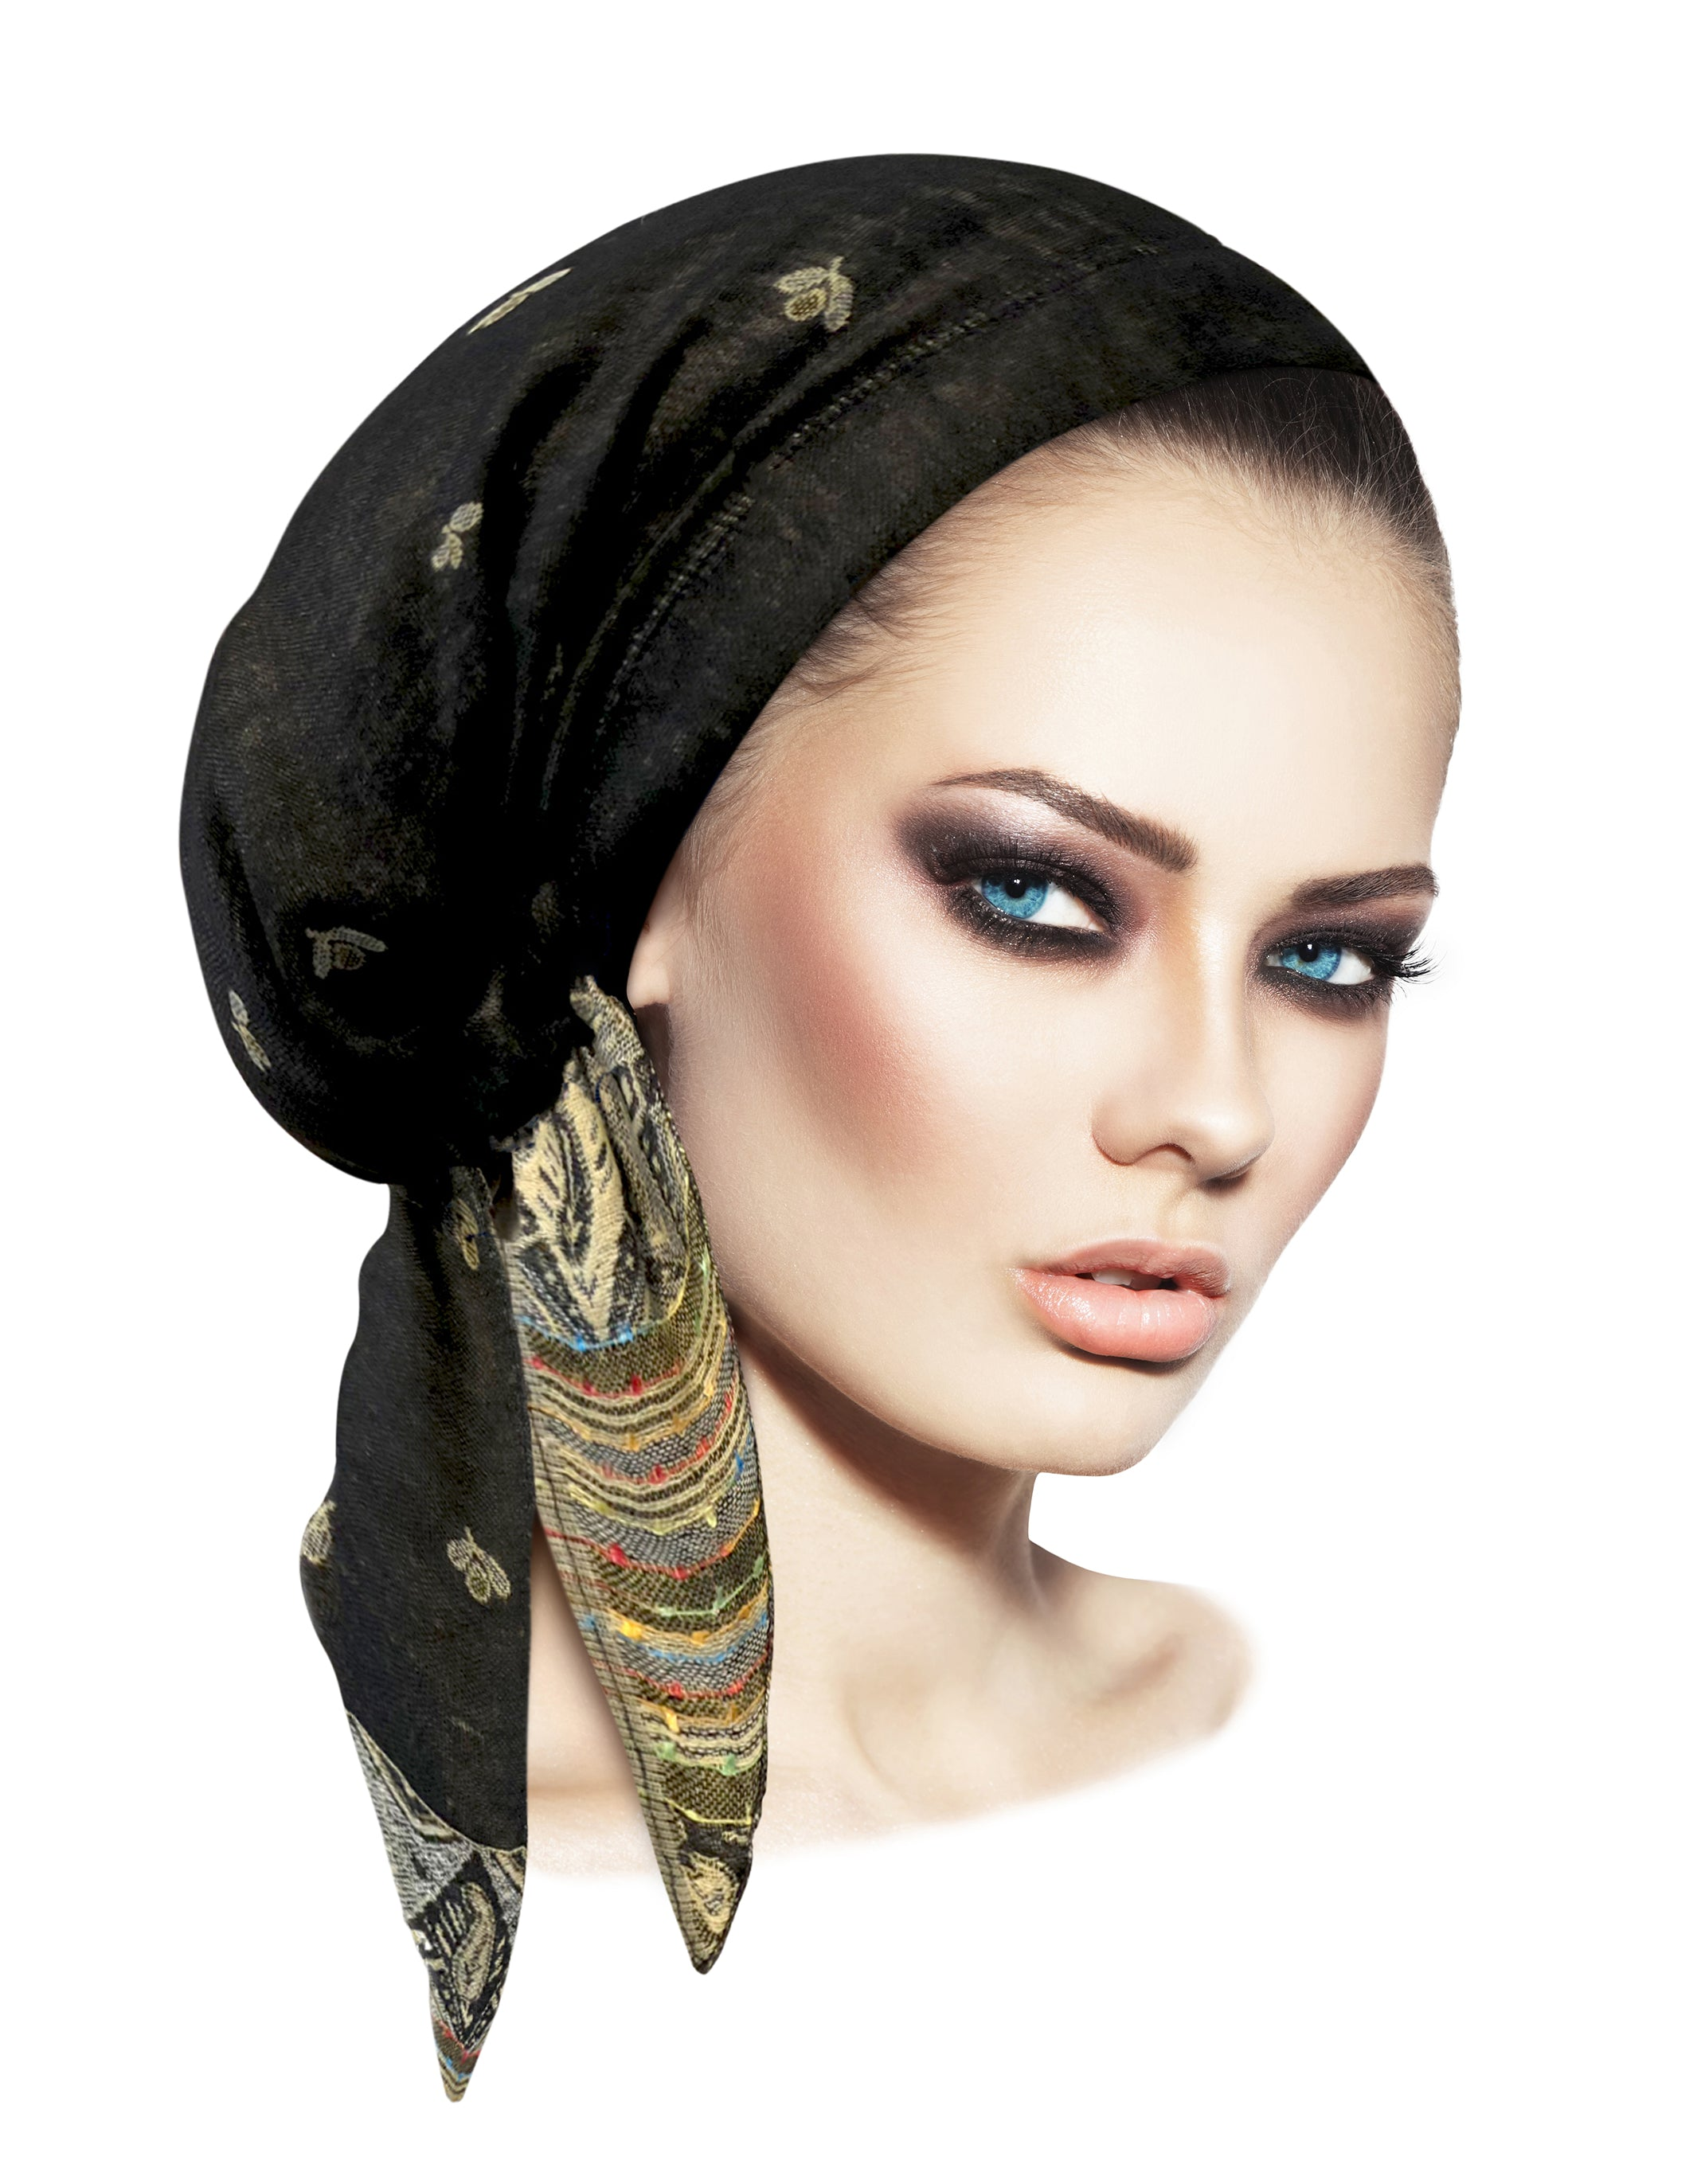 Boho chic black cashmere headscarf